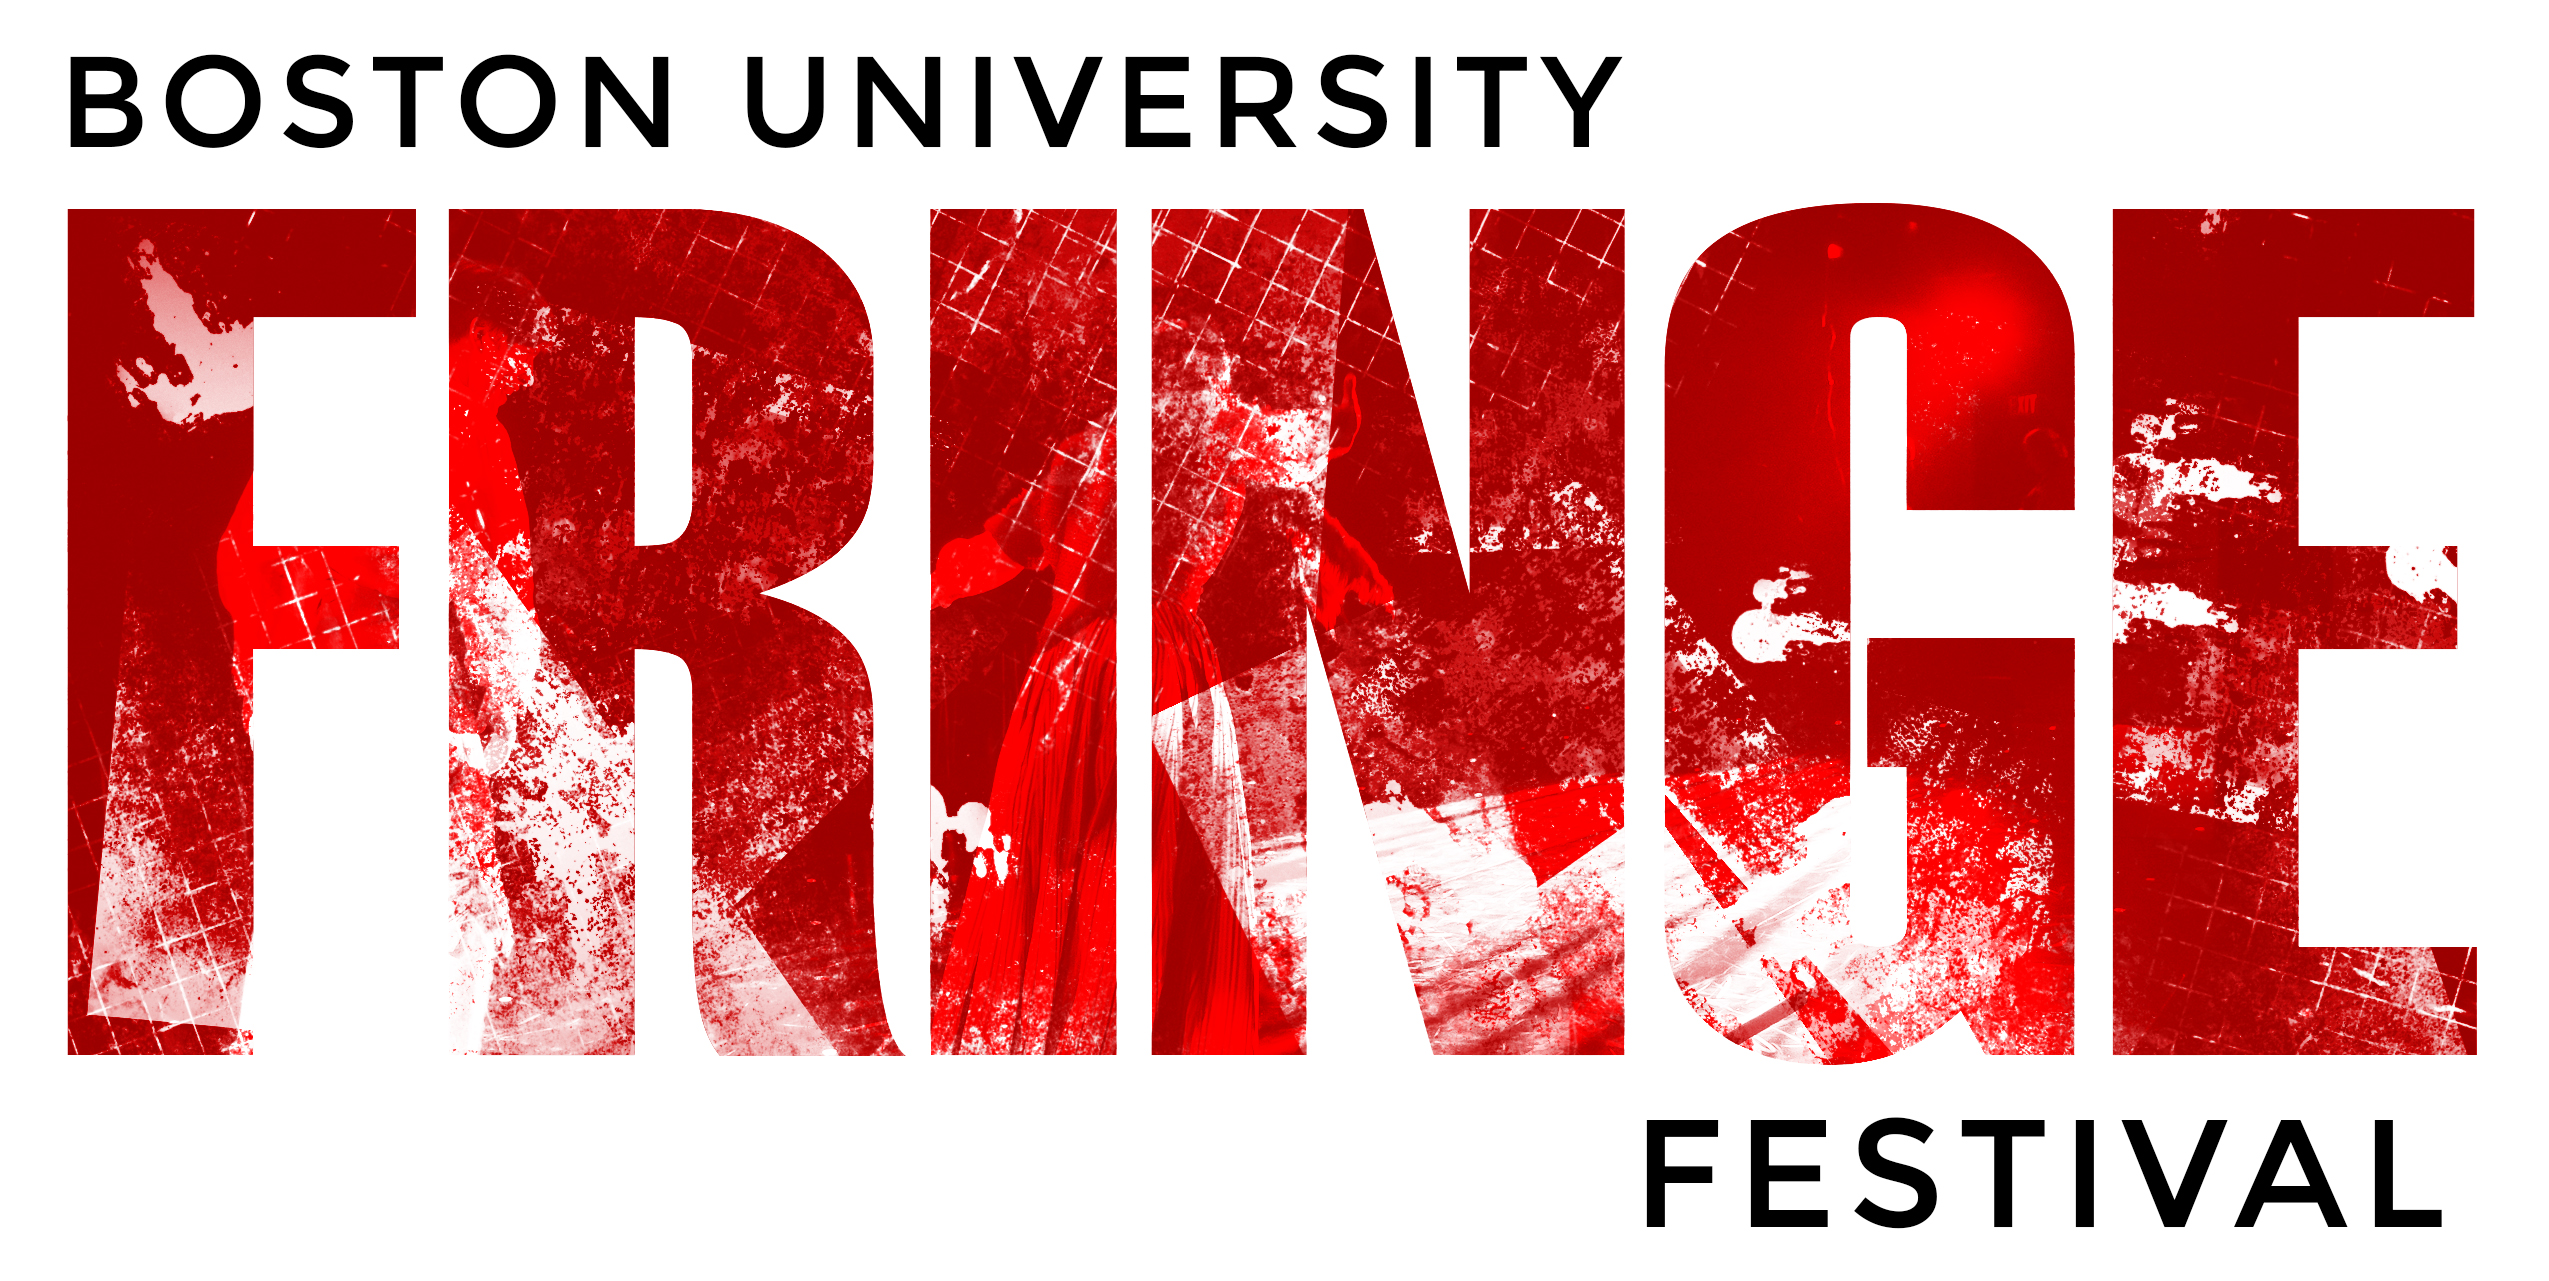 Boston University College of Fine Arts presents the 17th Annual Fall Fringe Festival, October 8 — 26, 2014 at the Avenue of the Arts. Featuring 'The Whitmores', 'Later the Same Evening', and 'La Tragédie de Carmen.'